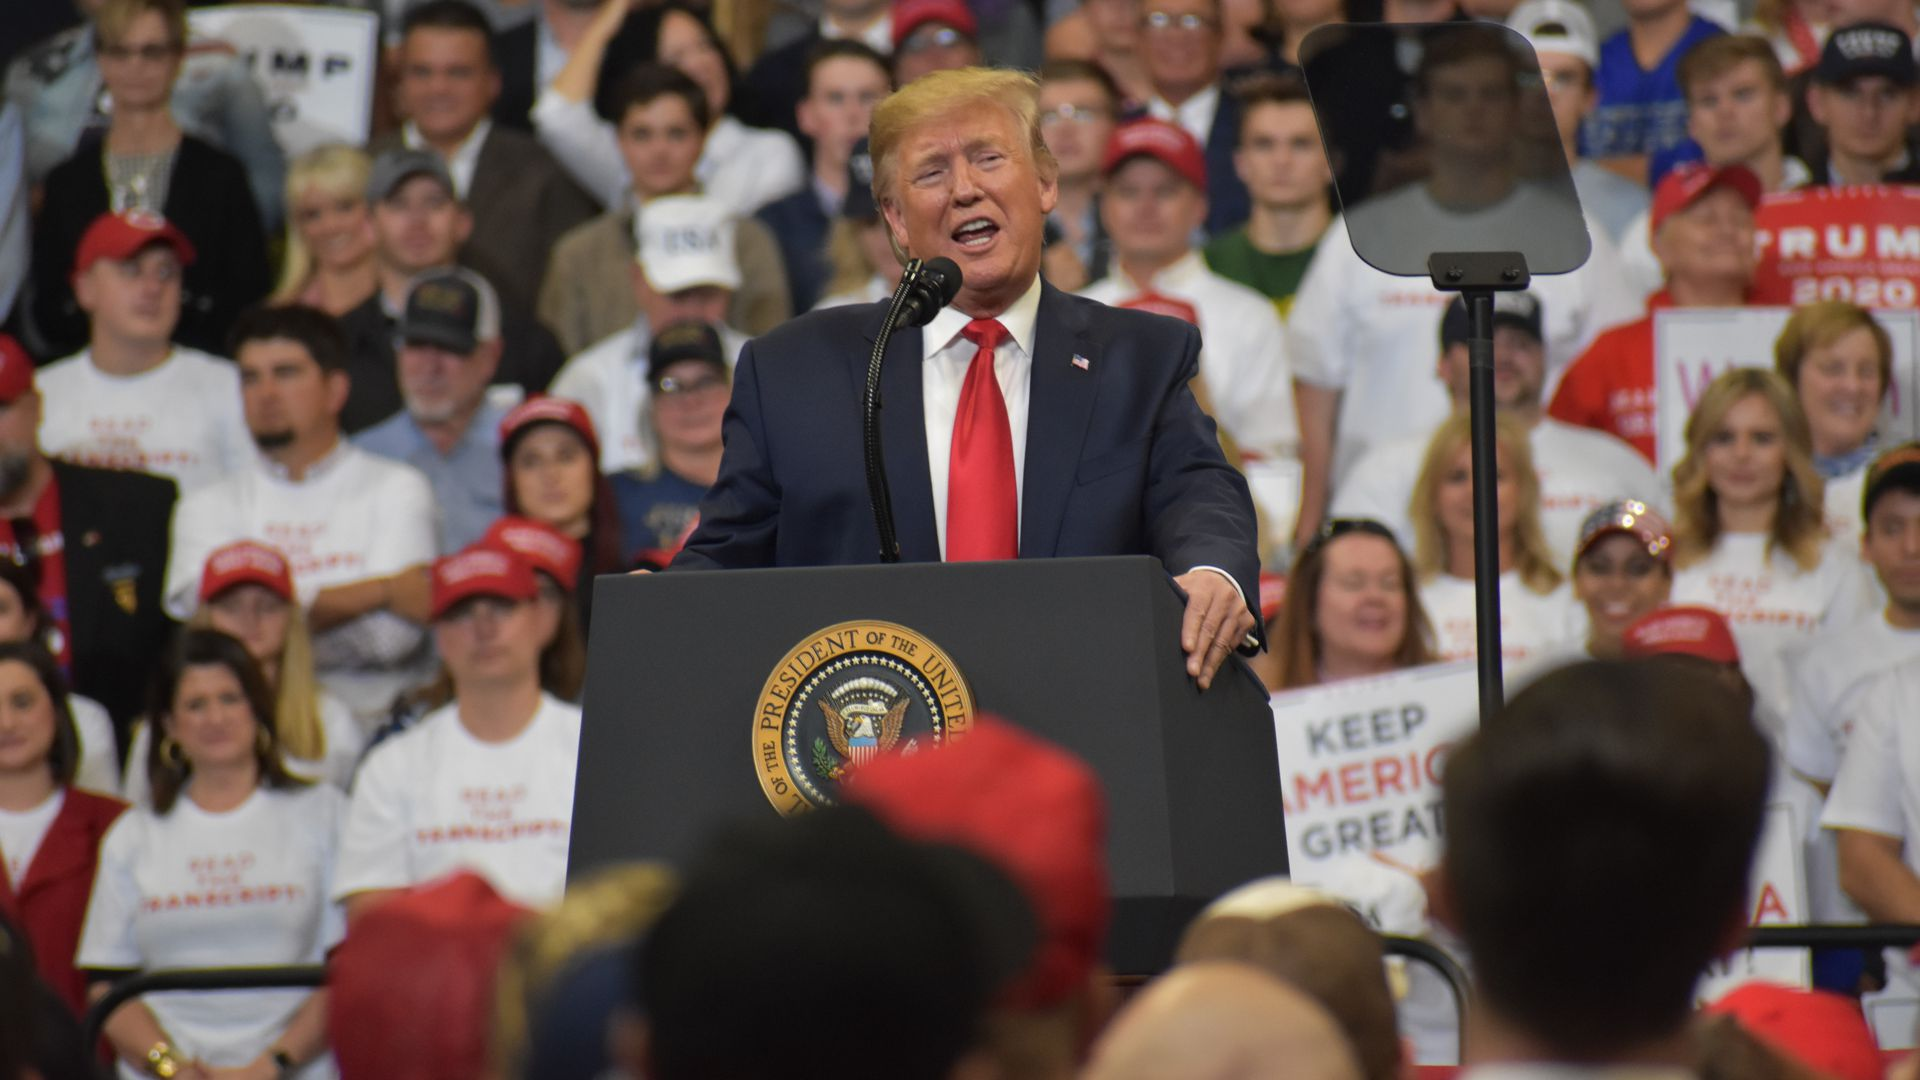 President Donald J. Trump delivers remarks at a 'Keep America Great' rally in Lexington, Kentucky